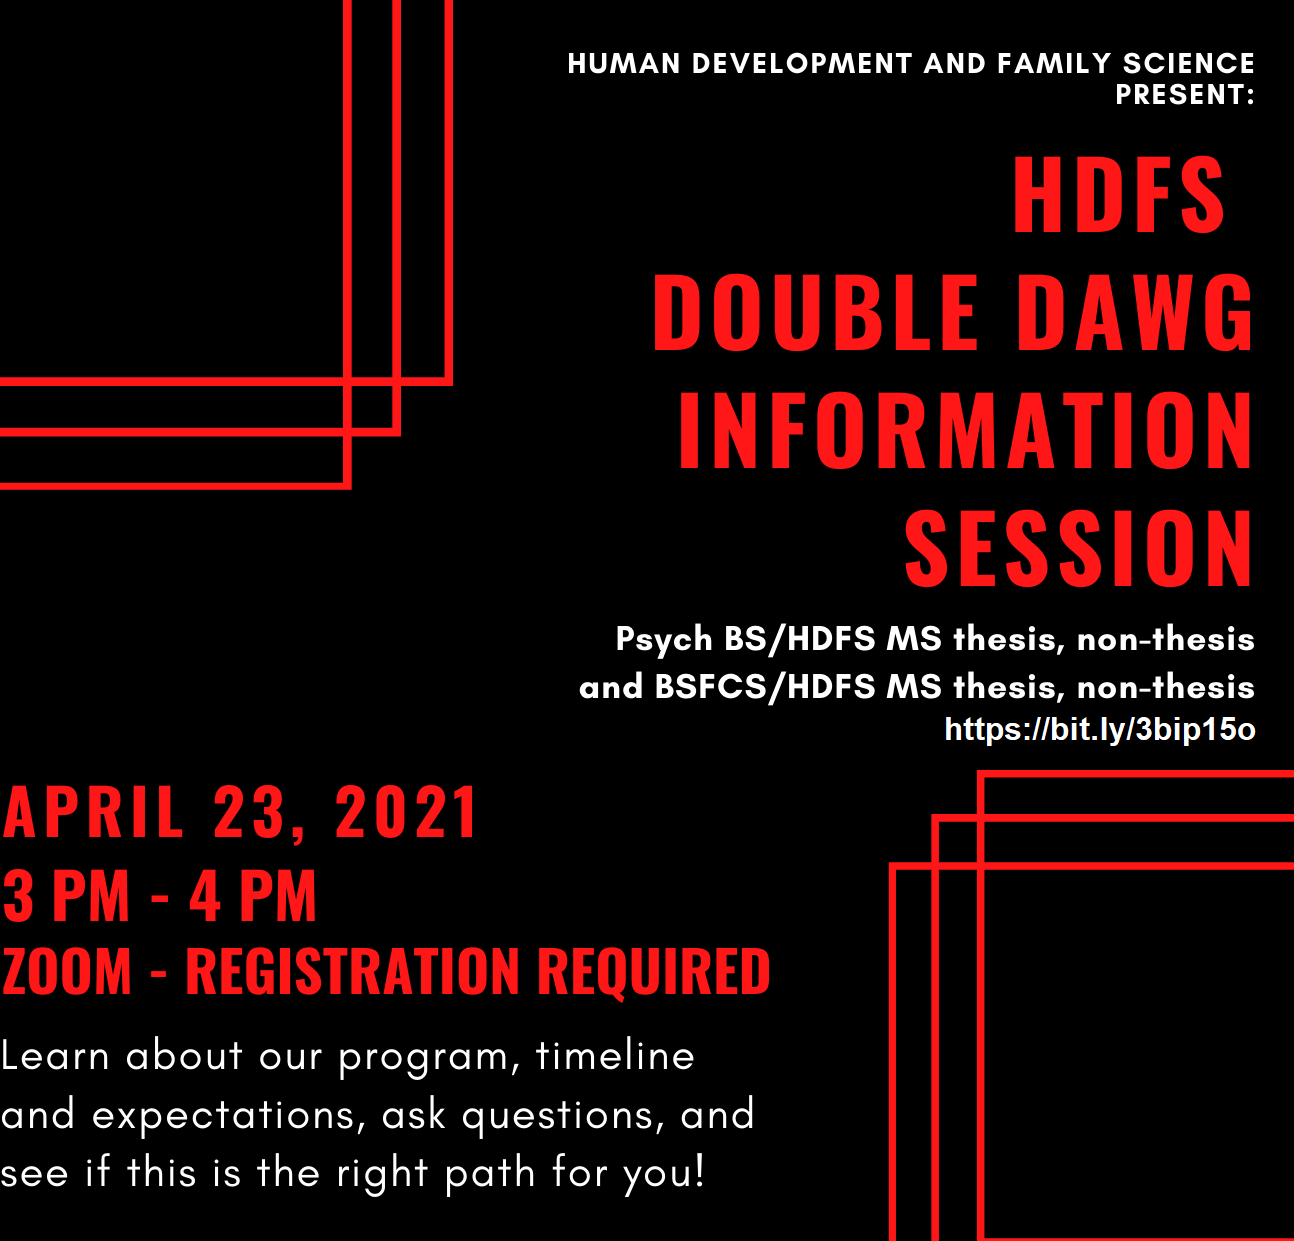 HDFS Double Dawg Information Session Psych BS/HDFS MS thesis, non-thesis BSFCS/HDFS MS thesis, non-thesis April 23, 2021 3 PM - 4 PM Zoom - Registration Required. Learn more about our program, timeline and expectations, ask questions, and if this is for yo